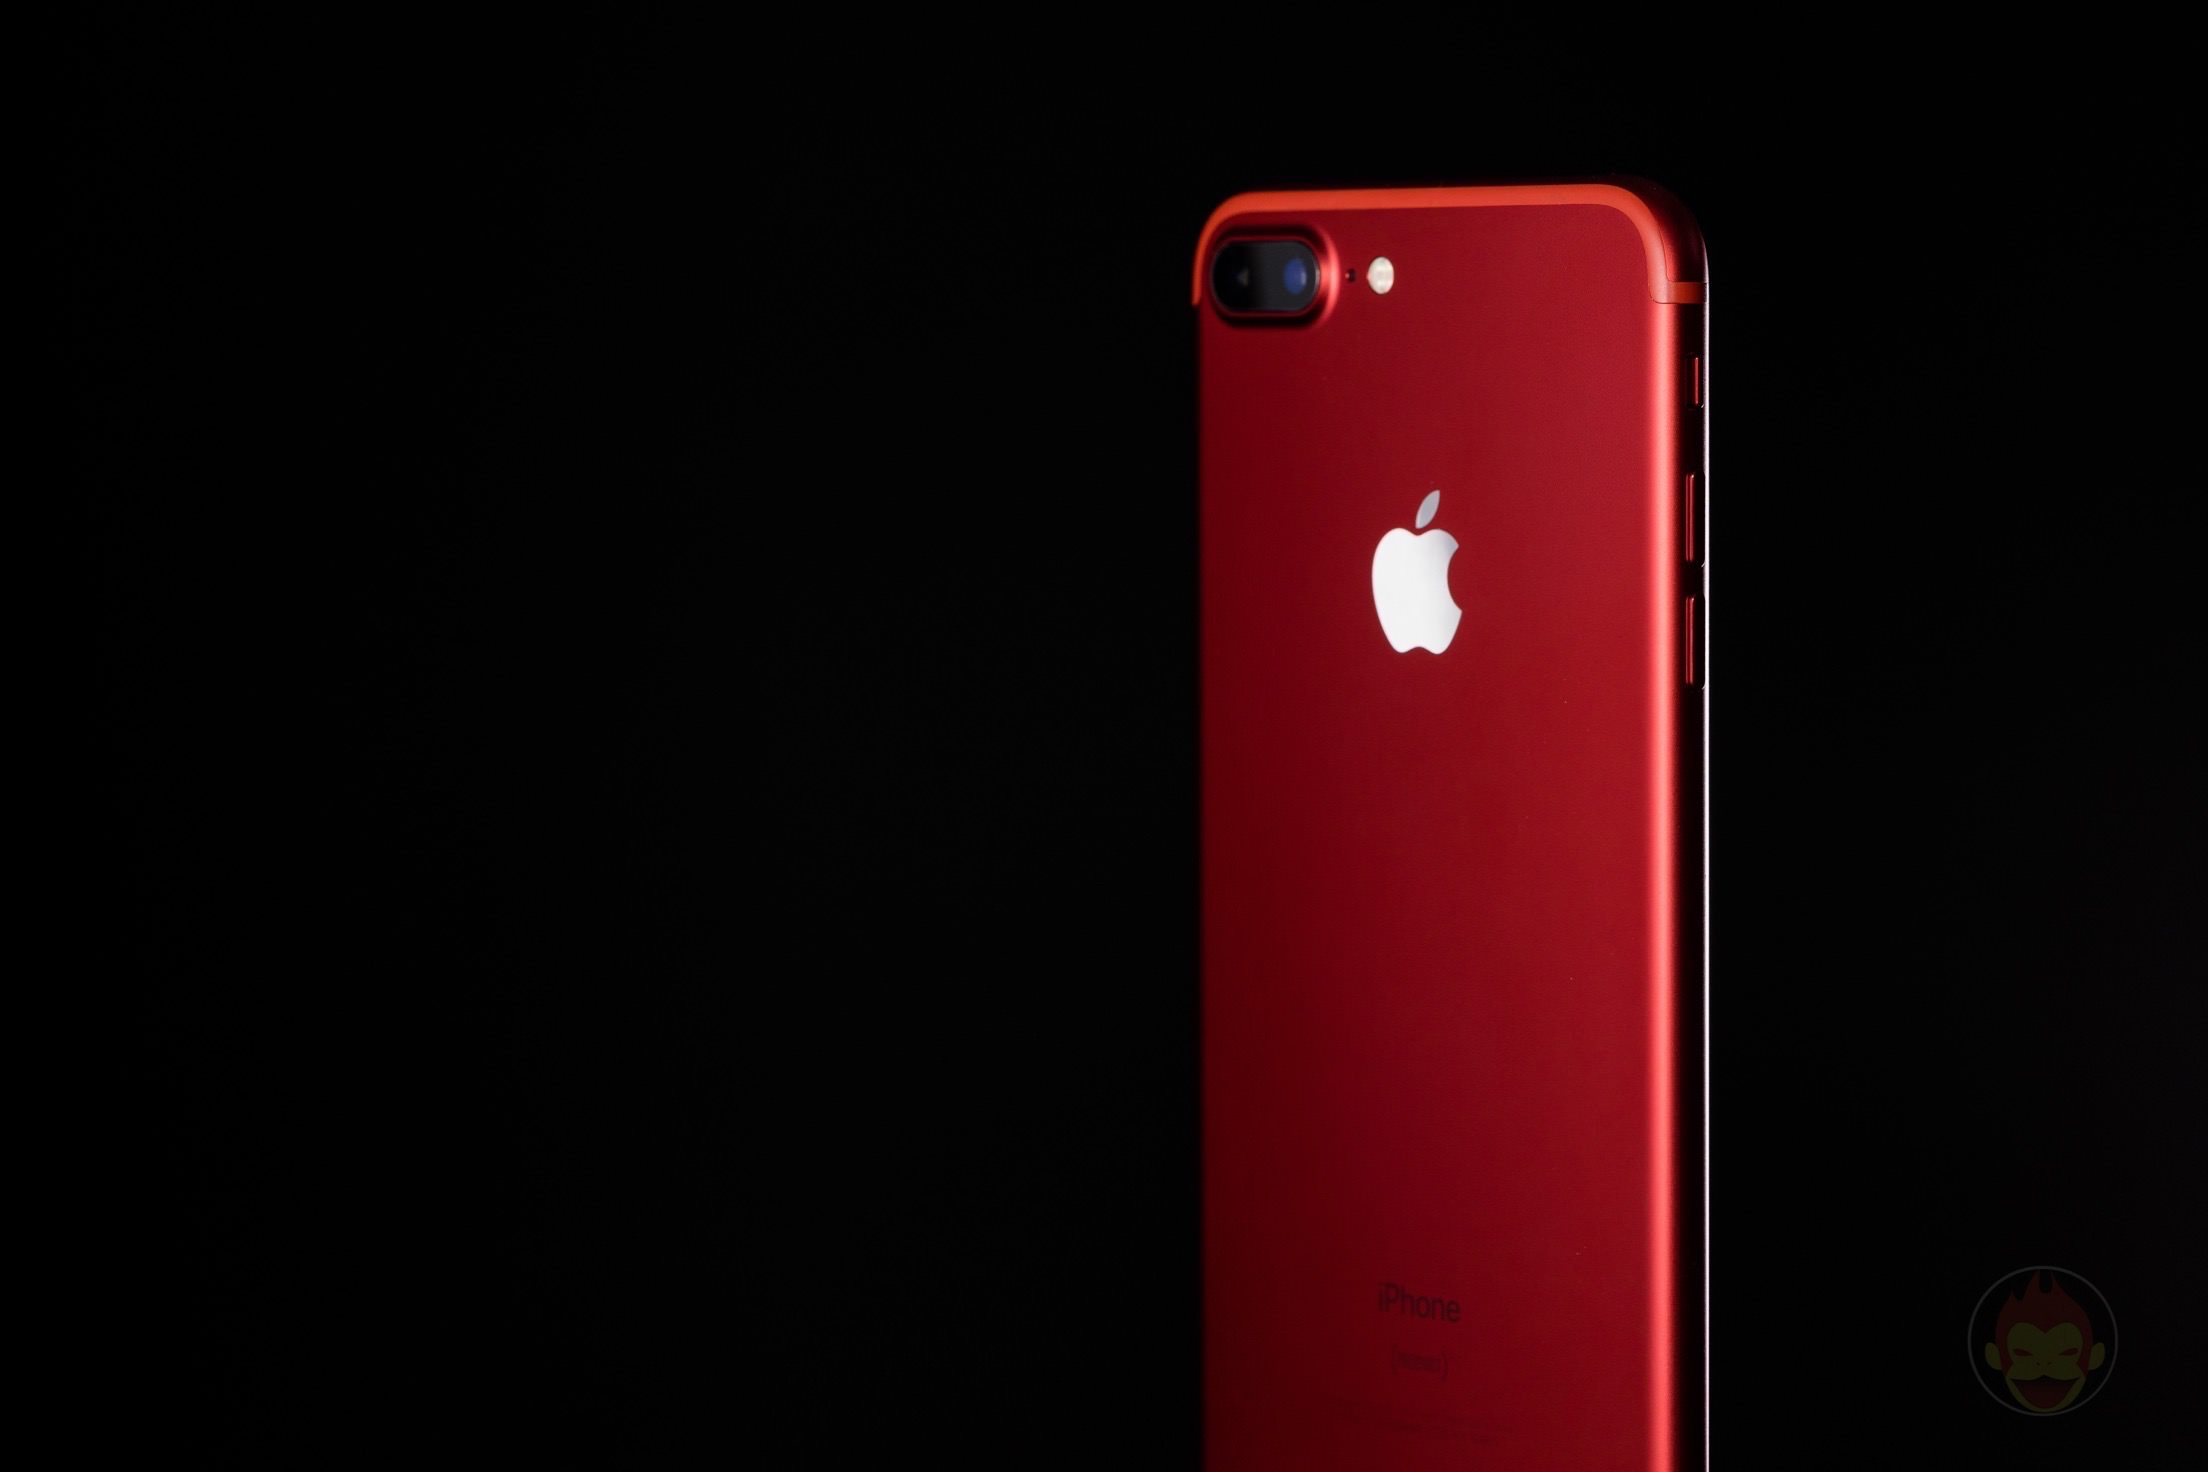 iPhone-7-Product-Red-Special-Edition-02.jpg